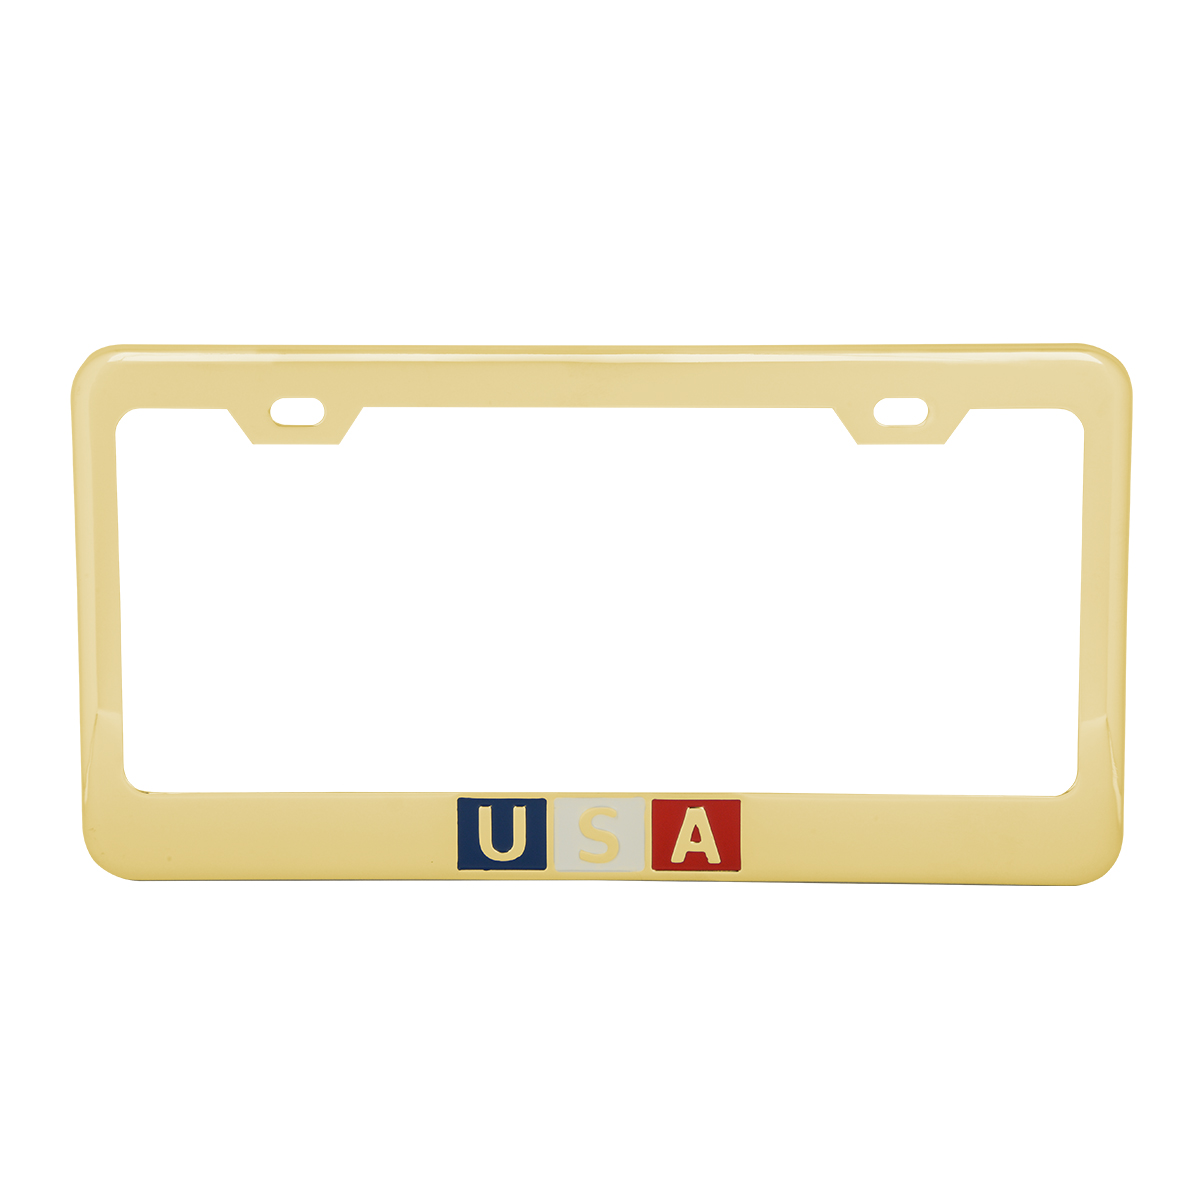 Brass-Plated (Gold Color) USA License Plate Frame